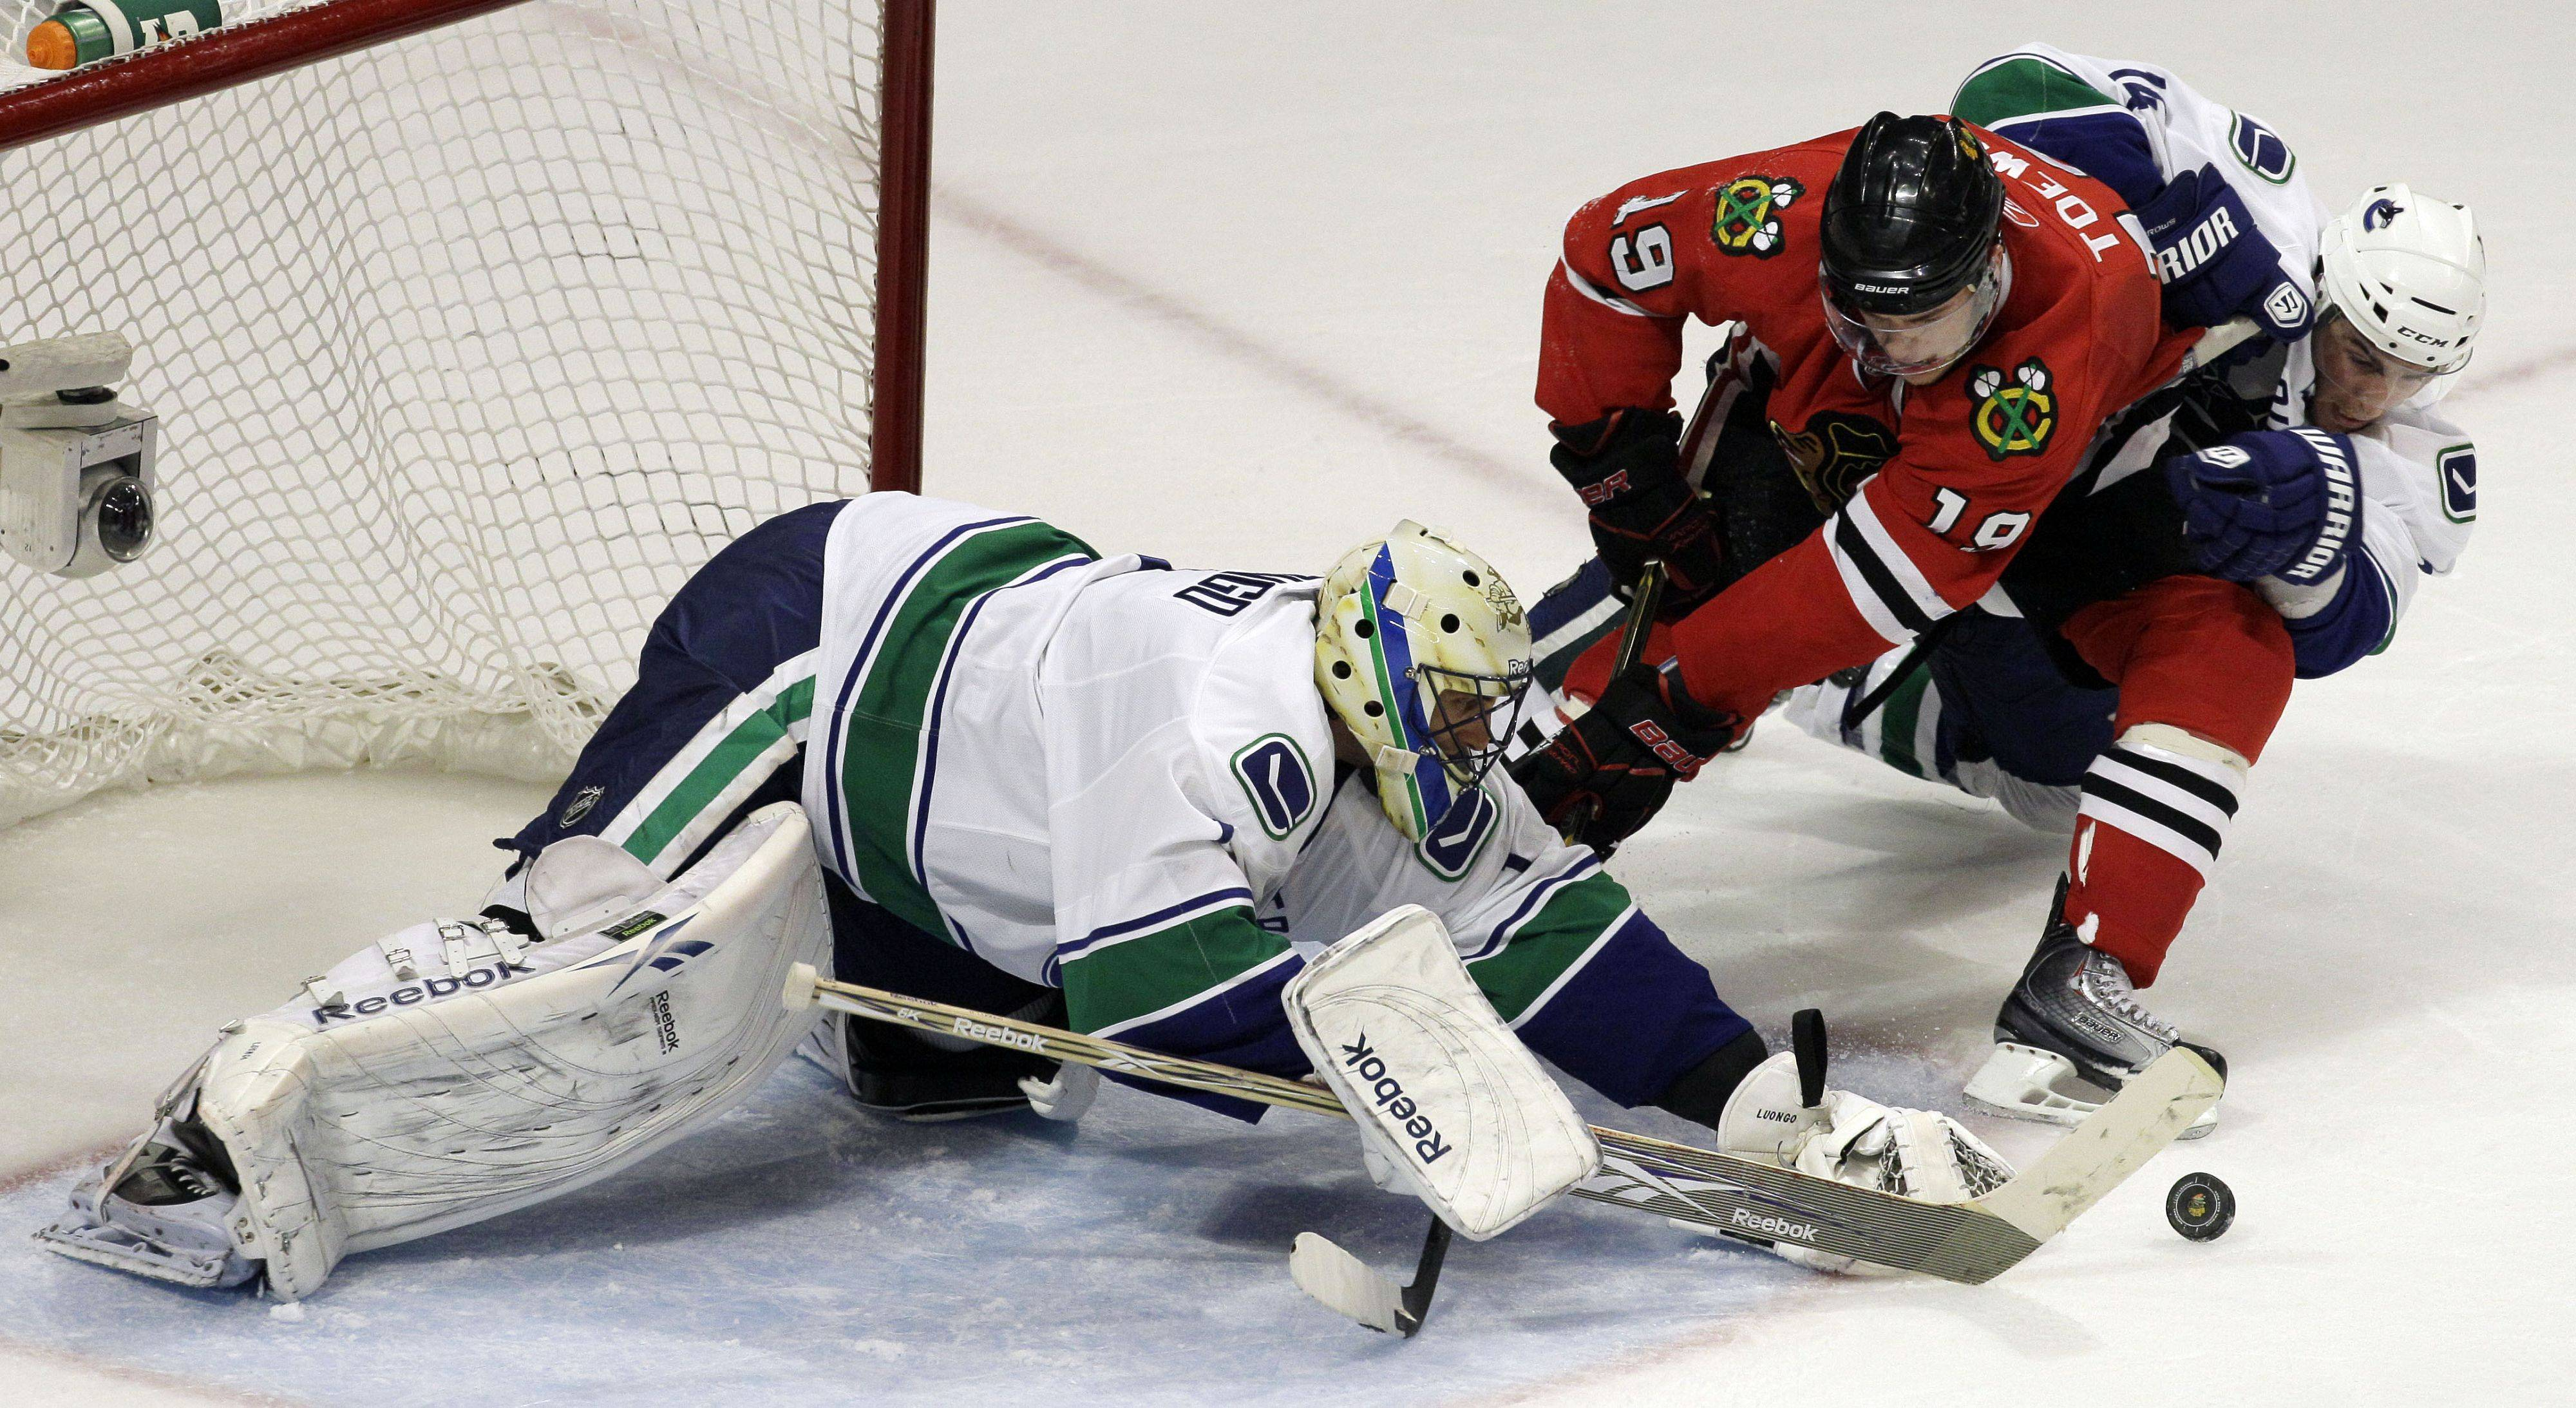 Vancouver Canucks goalie Roberto Luongo makes a save as Chicago Blackhawks center Jonathan Toews (19) and Vancouver Canucks left wing Alex Burrows battle for the puck during the third period.